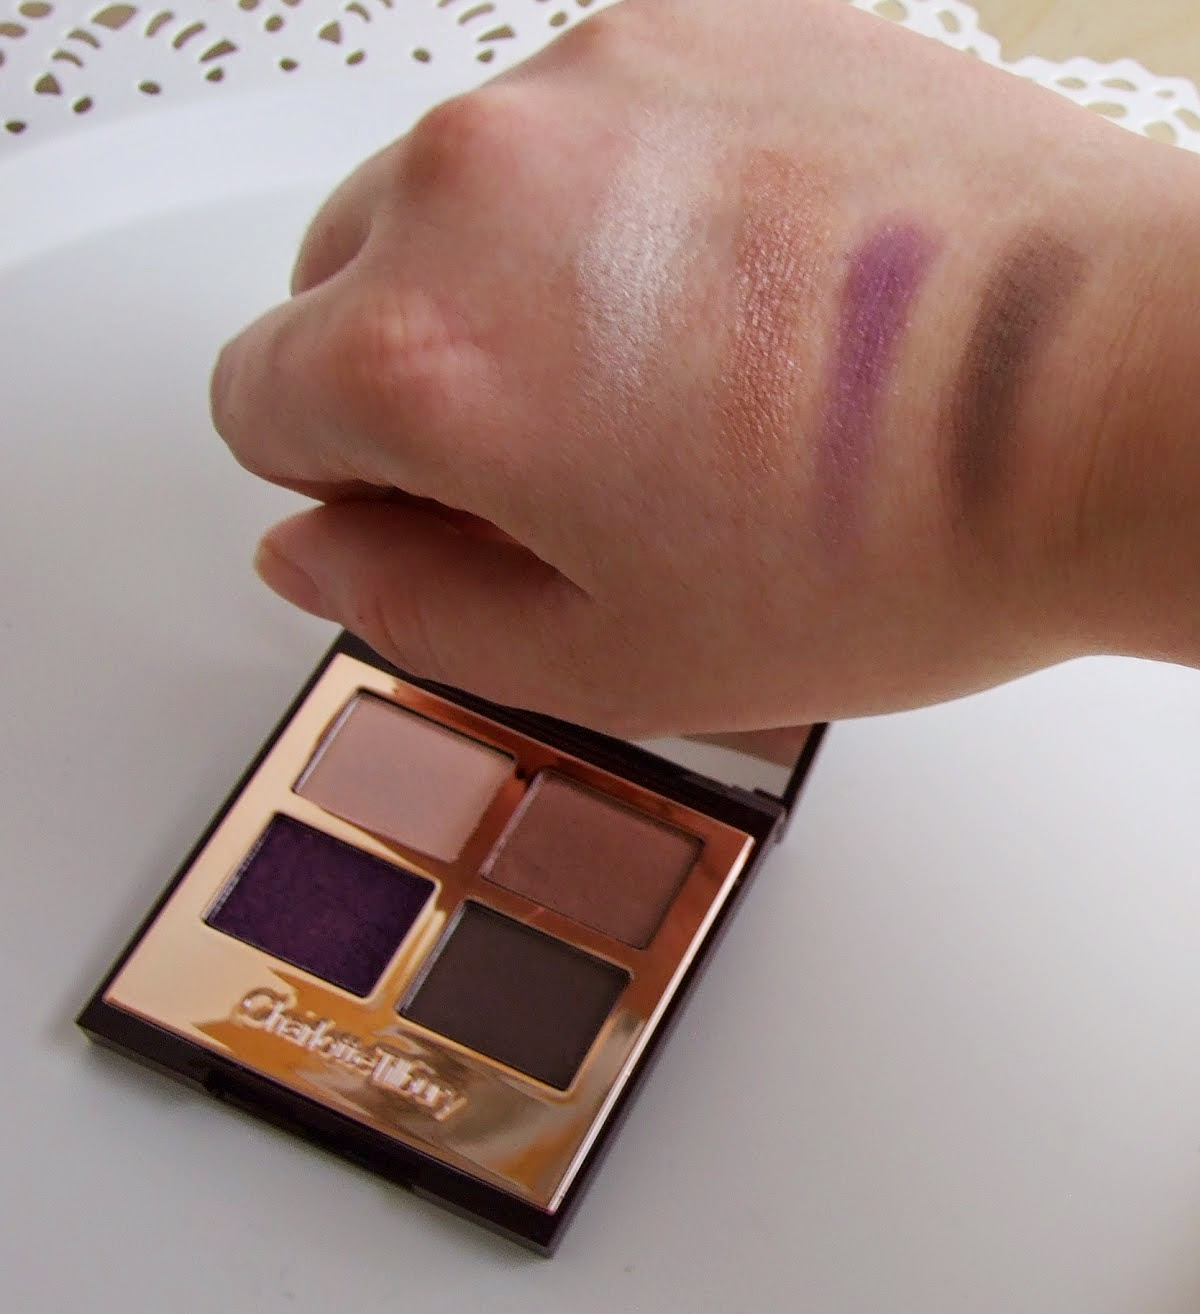 charlotte tilbury eyeshadow the glamour muse quad make-up swatches